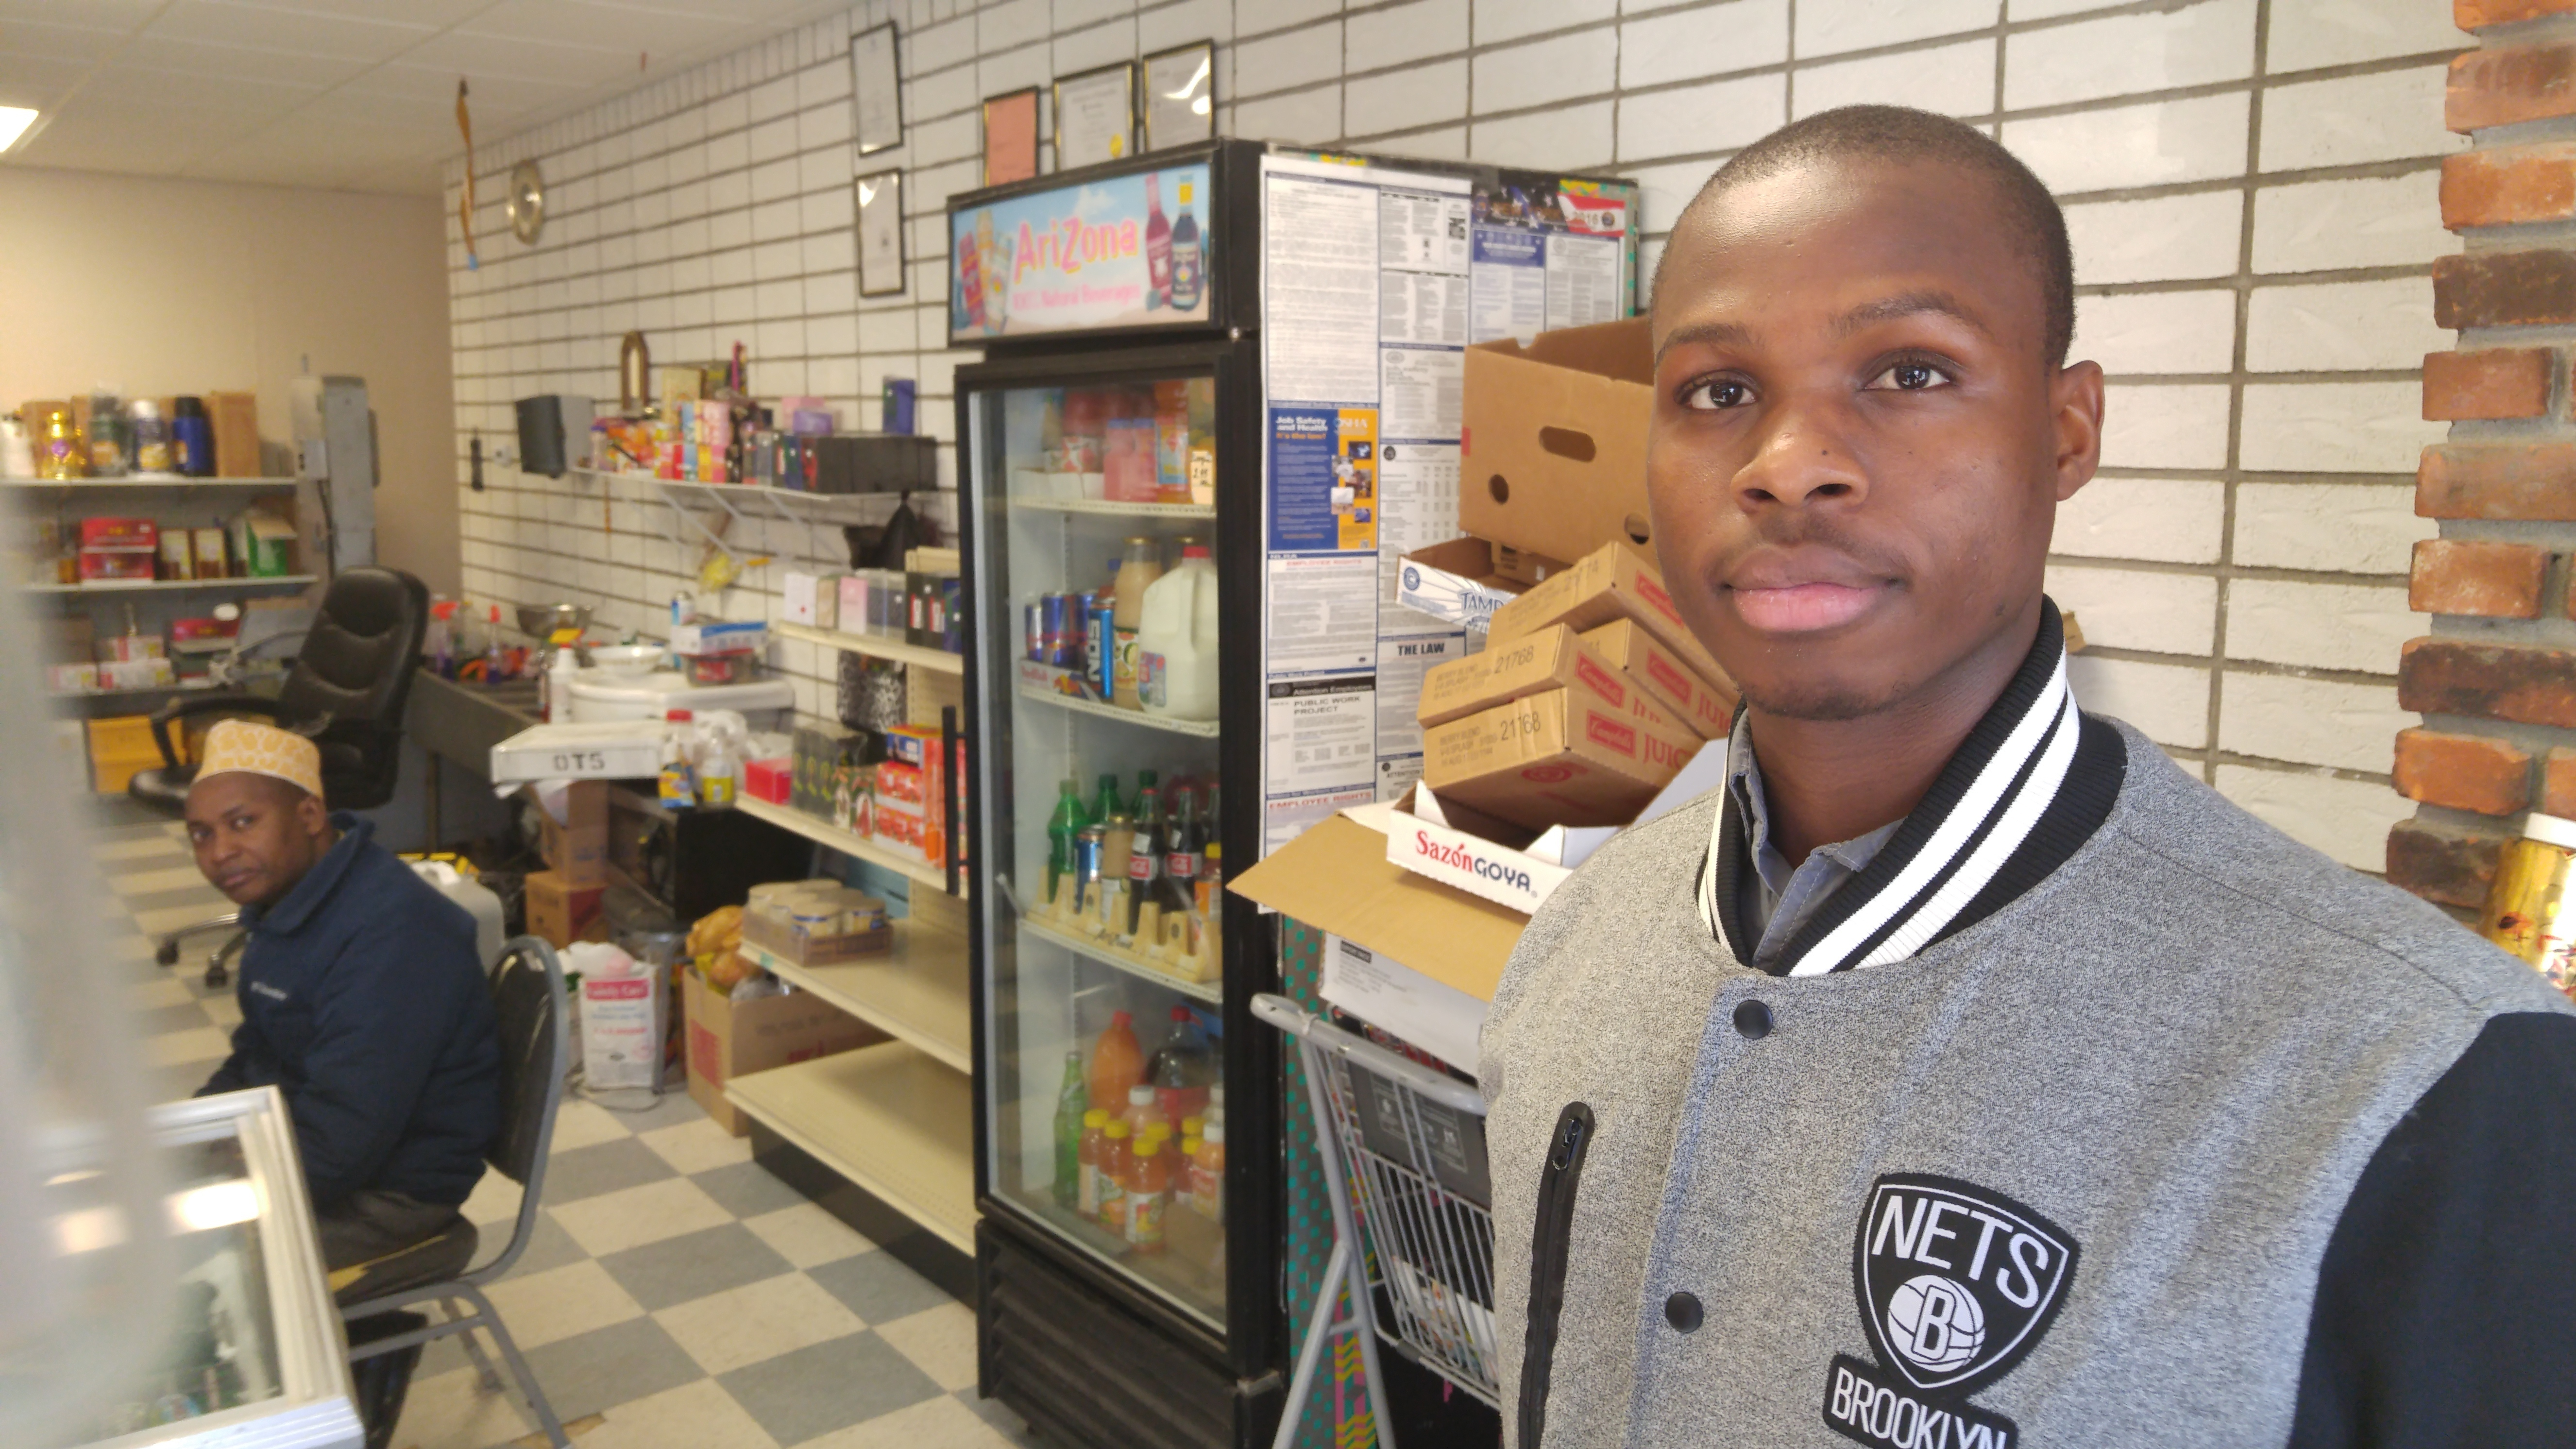 Mohamed Gabril, a refugee who became an American citizen, works at a Somali-owned grocery in Utica, N.Y. He's convinced the U.S. Constitution will protect him from any backlash under Donald Trump. Brian Mann/NCPR